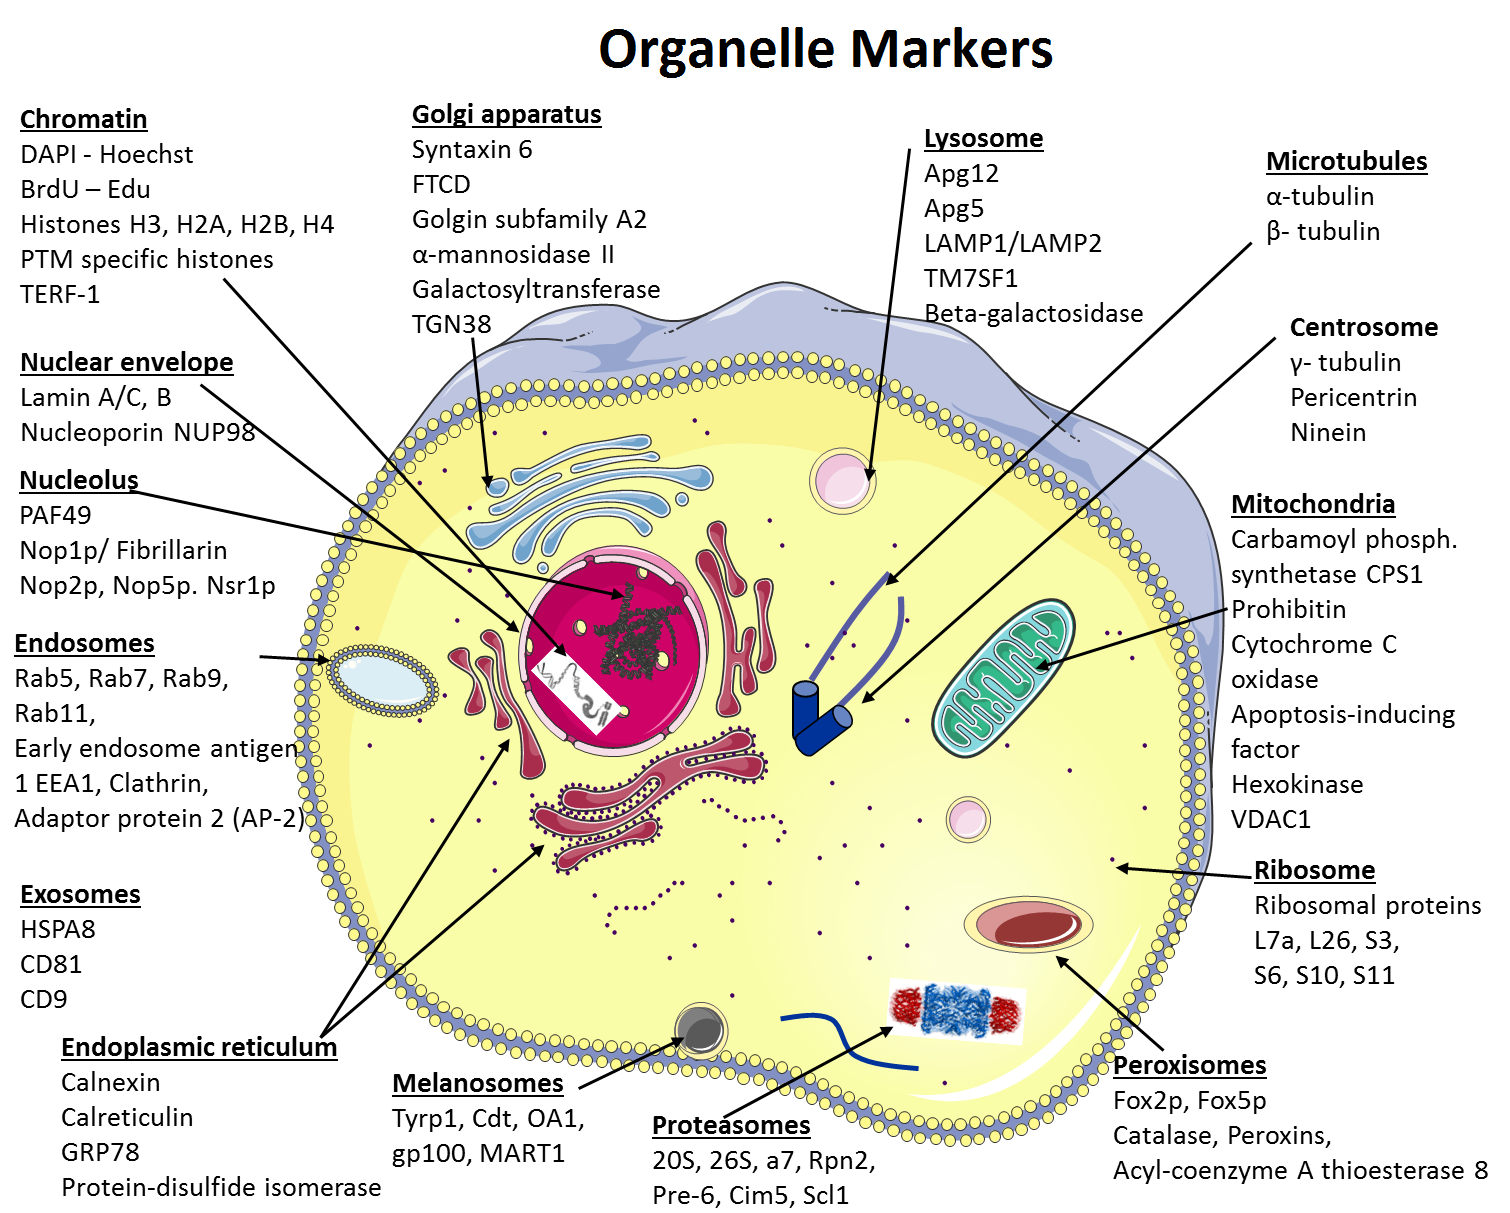 Te 181 1 Png 1510 1213 Cell Organelles Organelles Functions Organelles